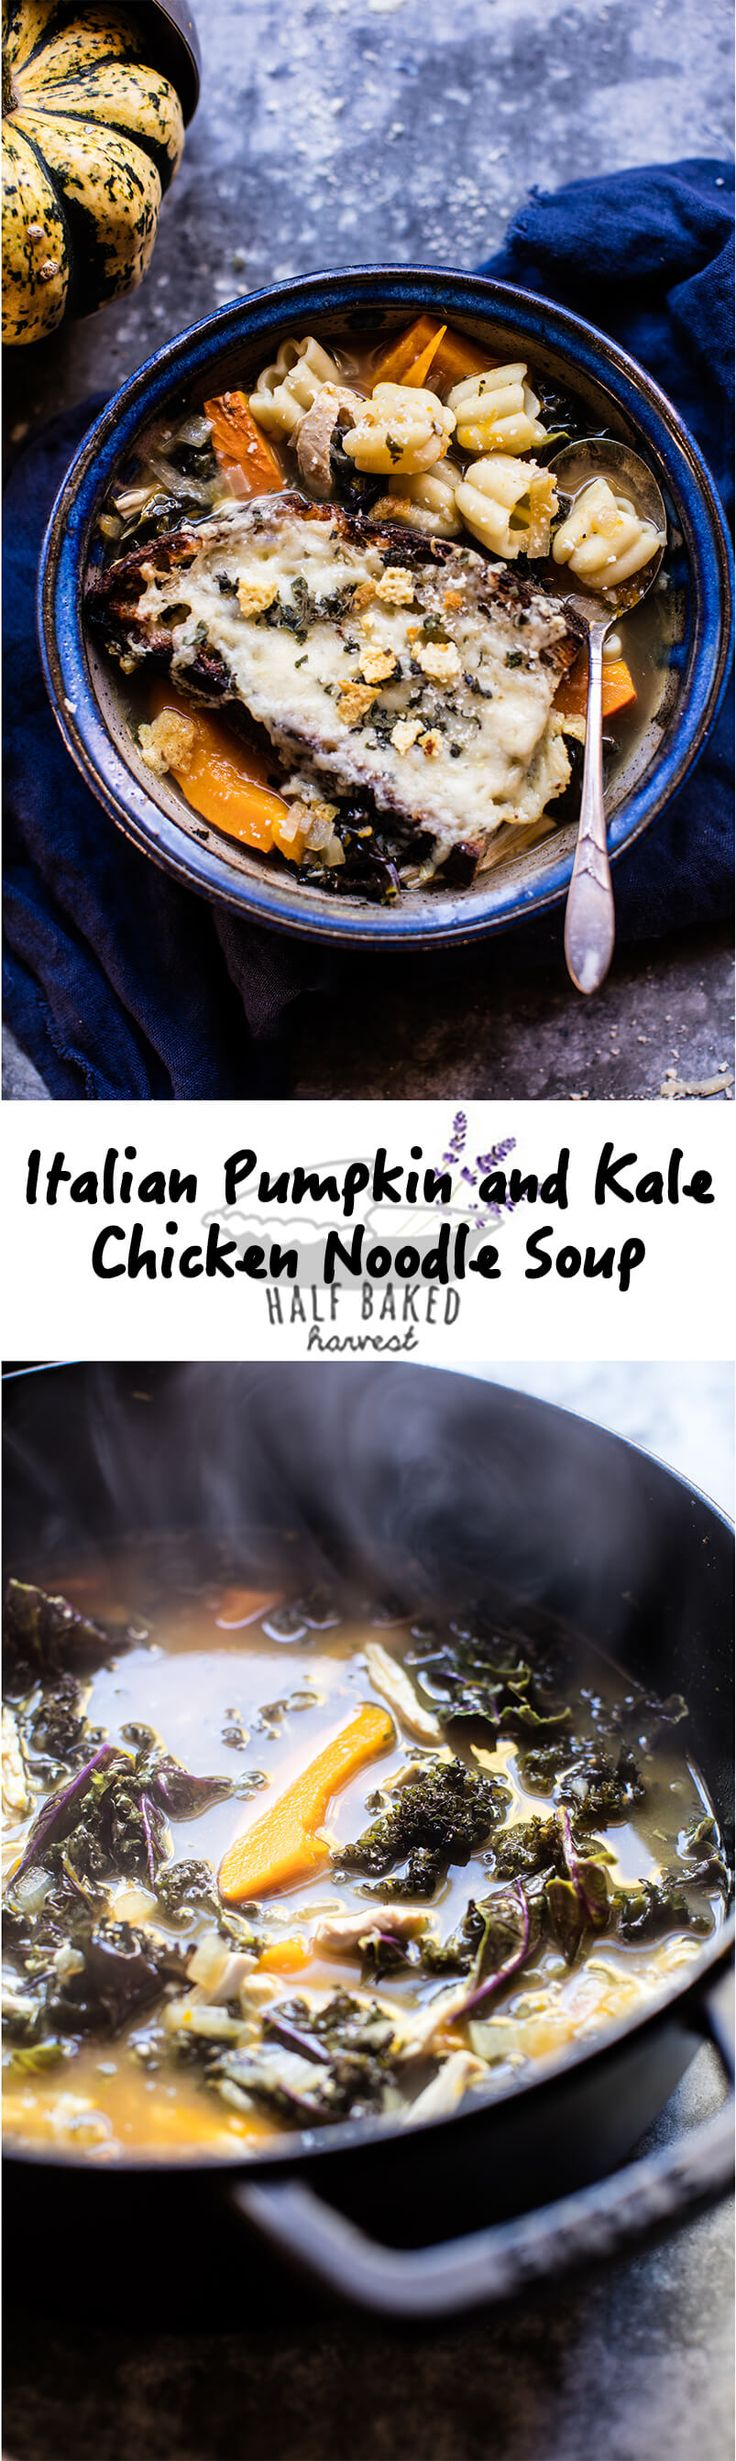 Italian Pumpkin and Kale Chicken Noodle Soup with Fontina Toast | halfbakedharvest.com @hbharvest